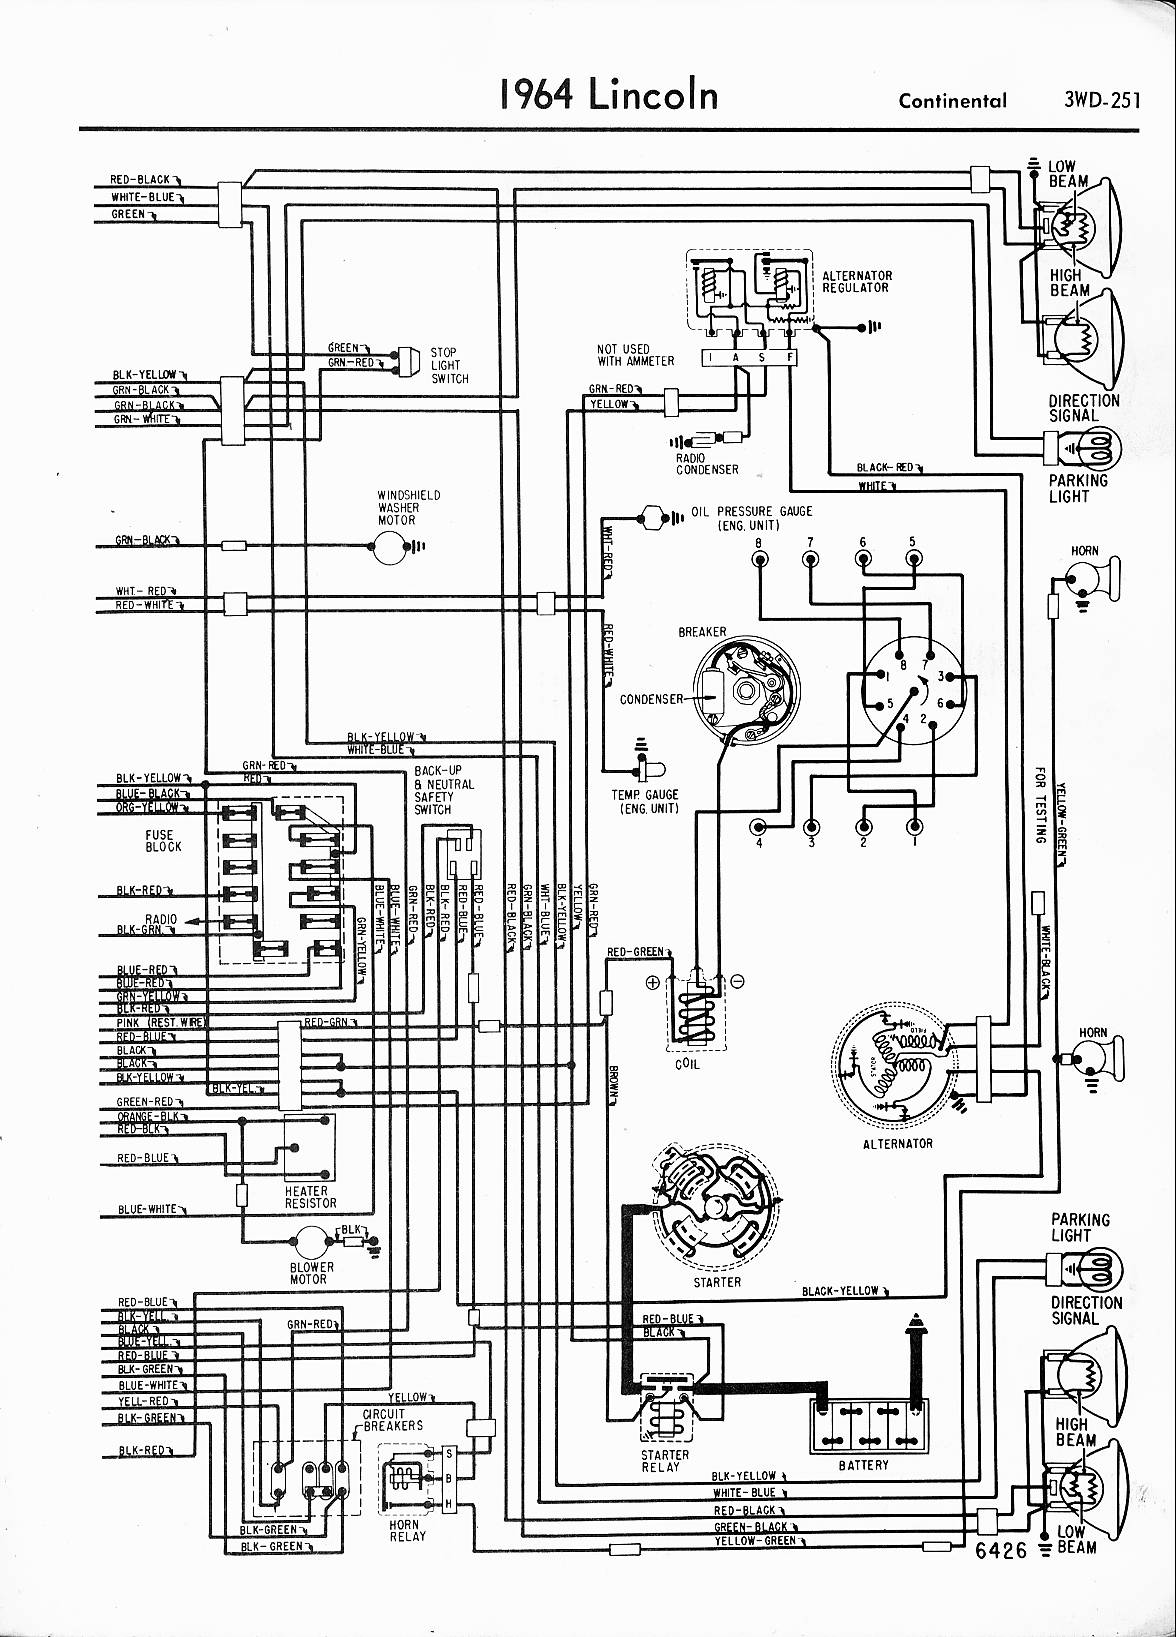 2005 Chrysler Pacifica V6 3 8l Serpentine Belt Diagram as well W1202 Wiring Adapter Harness 3 Pin Si Plug To 4 Pin Cs Plug likewise I01164895 in addition Stator Wiring Diagram Craftsman Lt2000 also Mitsubishi L200 Wiring Diagram. on alternator wiring diagram chrysler